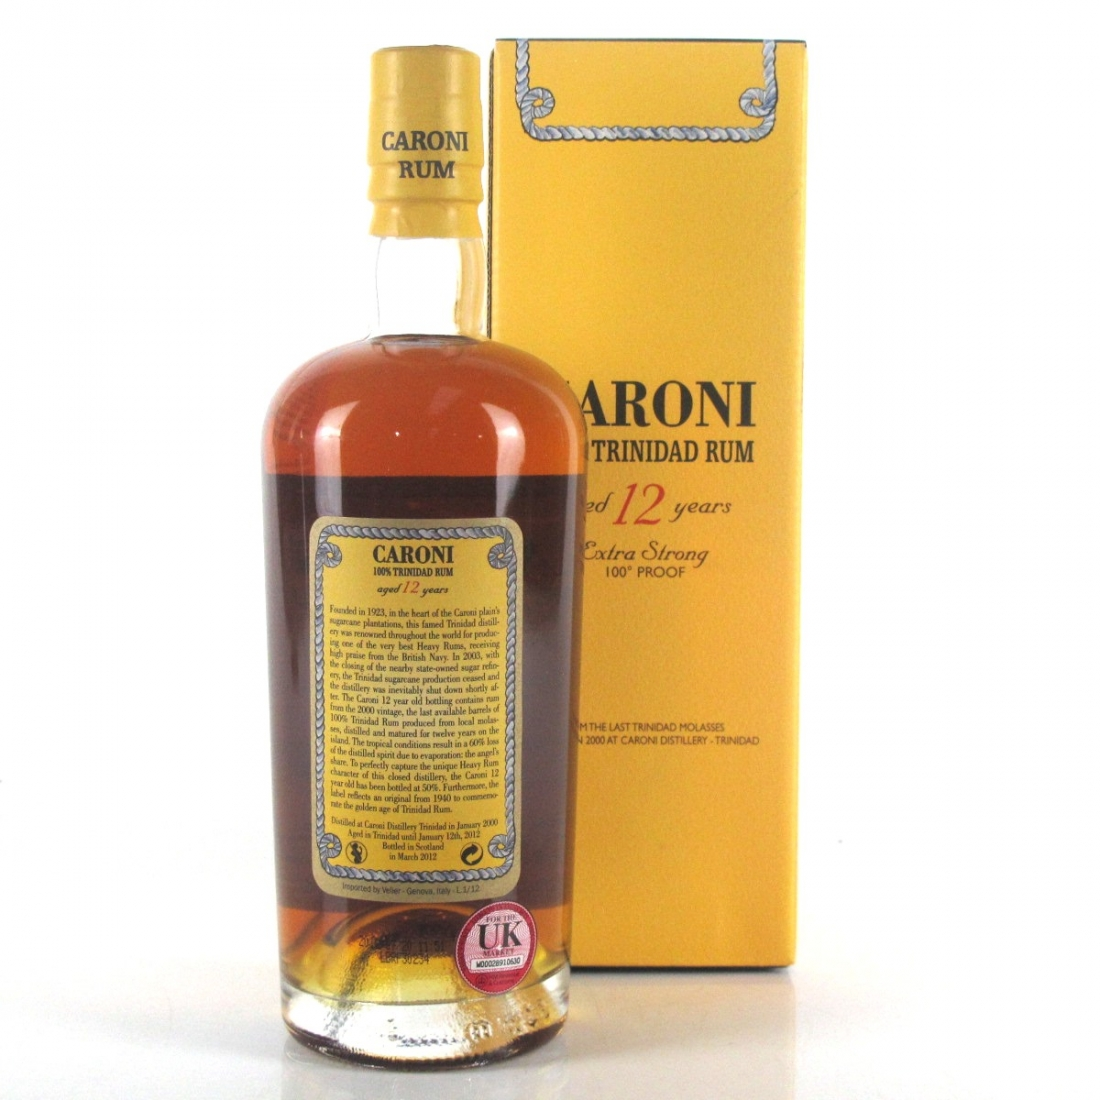 Caroni 2000 12 Year Old 100 Proof Rum